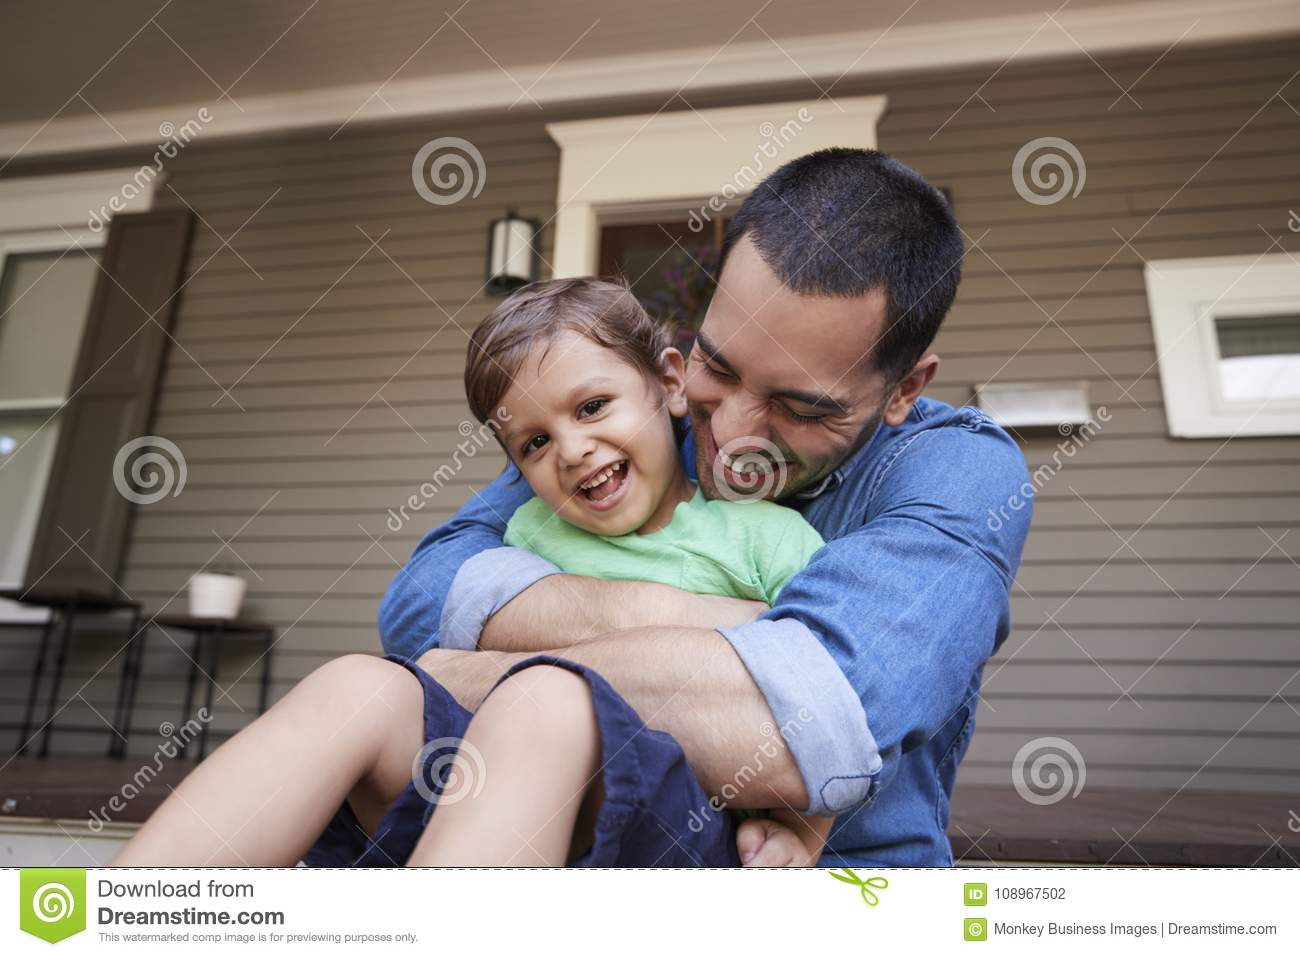 Pai Hugging Son As eles Sit On Porch Of House junto